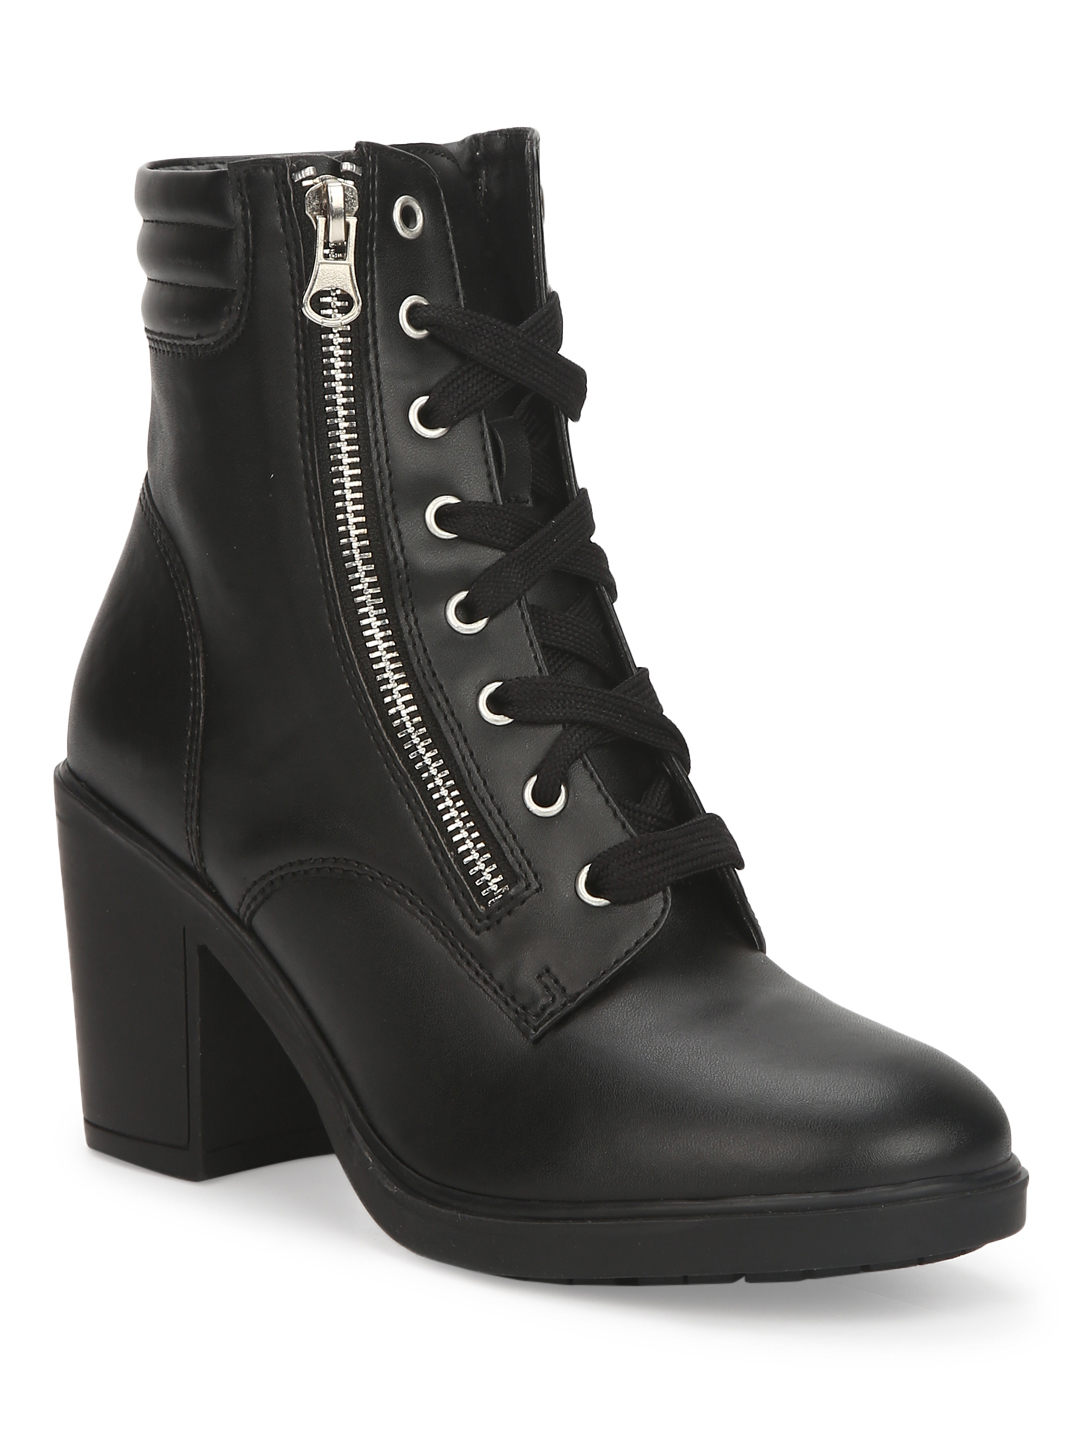 Truffle Collection | Black PU Lace Up Block Heel Ankle Boots